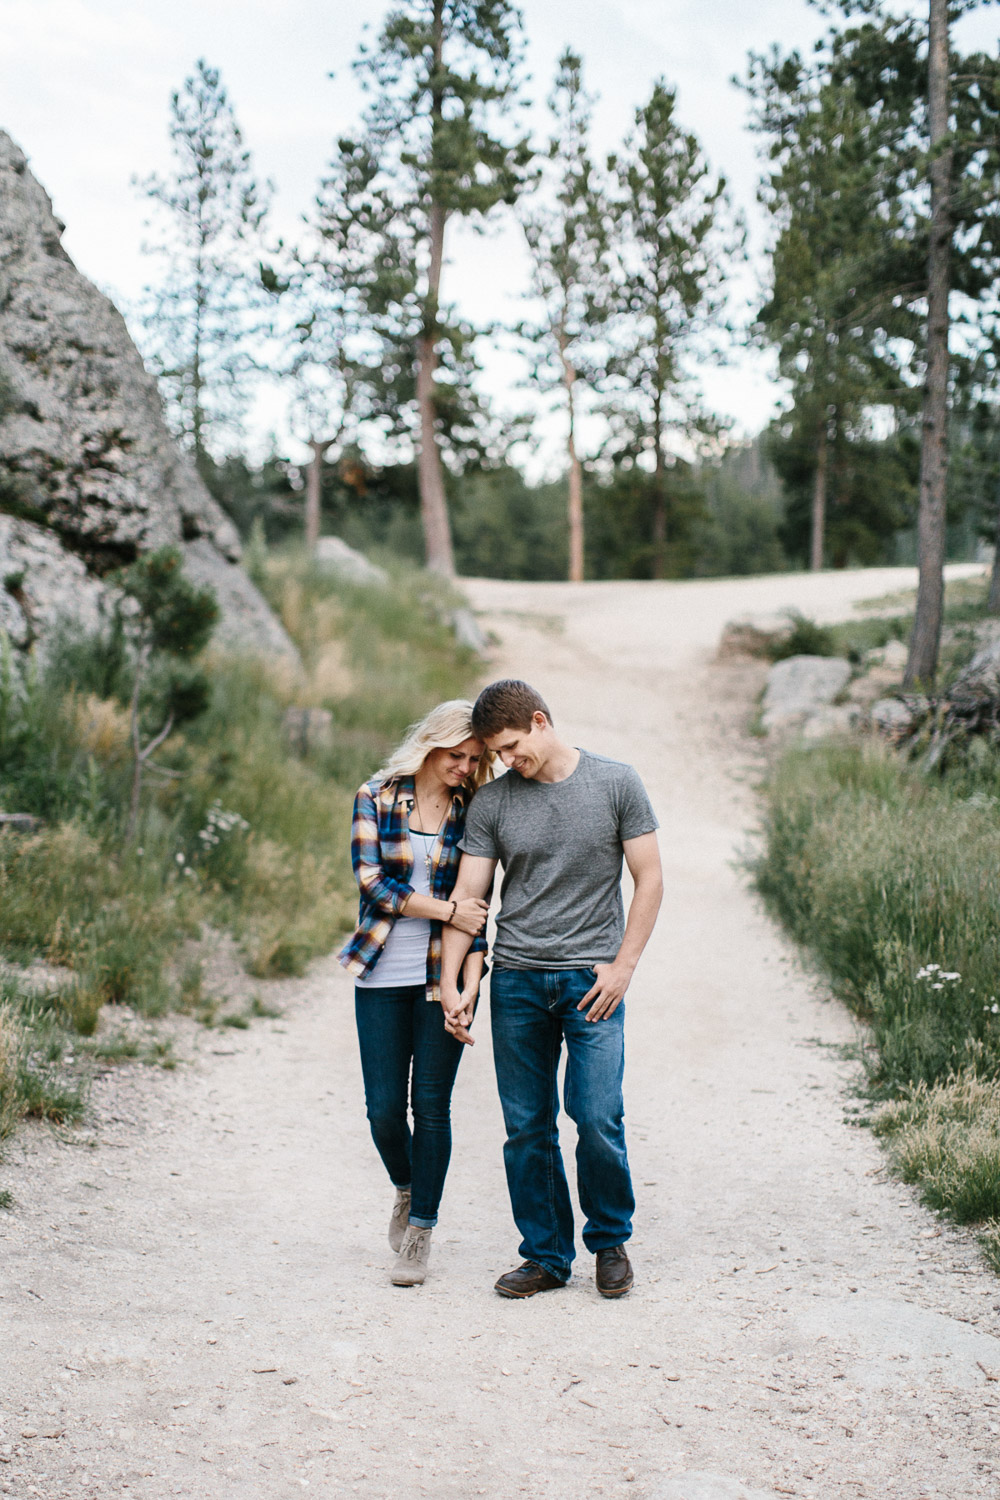 SiouxFalls_BlackHills_Adventure_Engagement_Wedding_Photographer_52.jpg